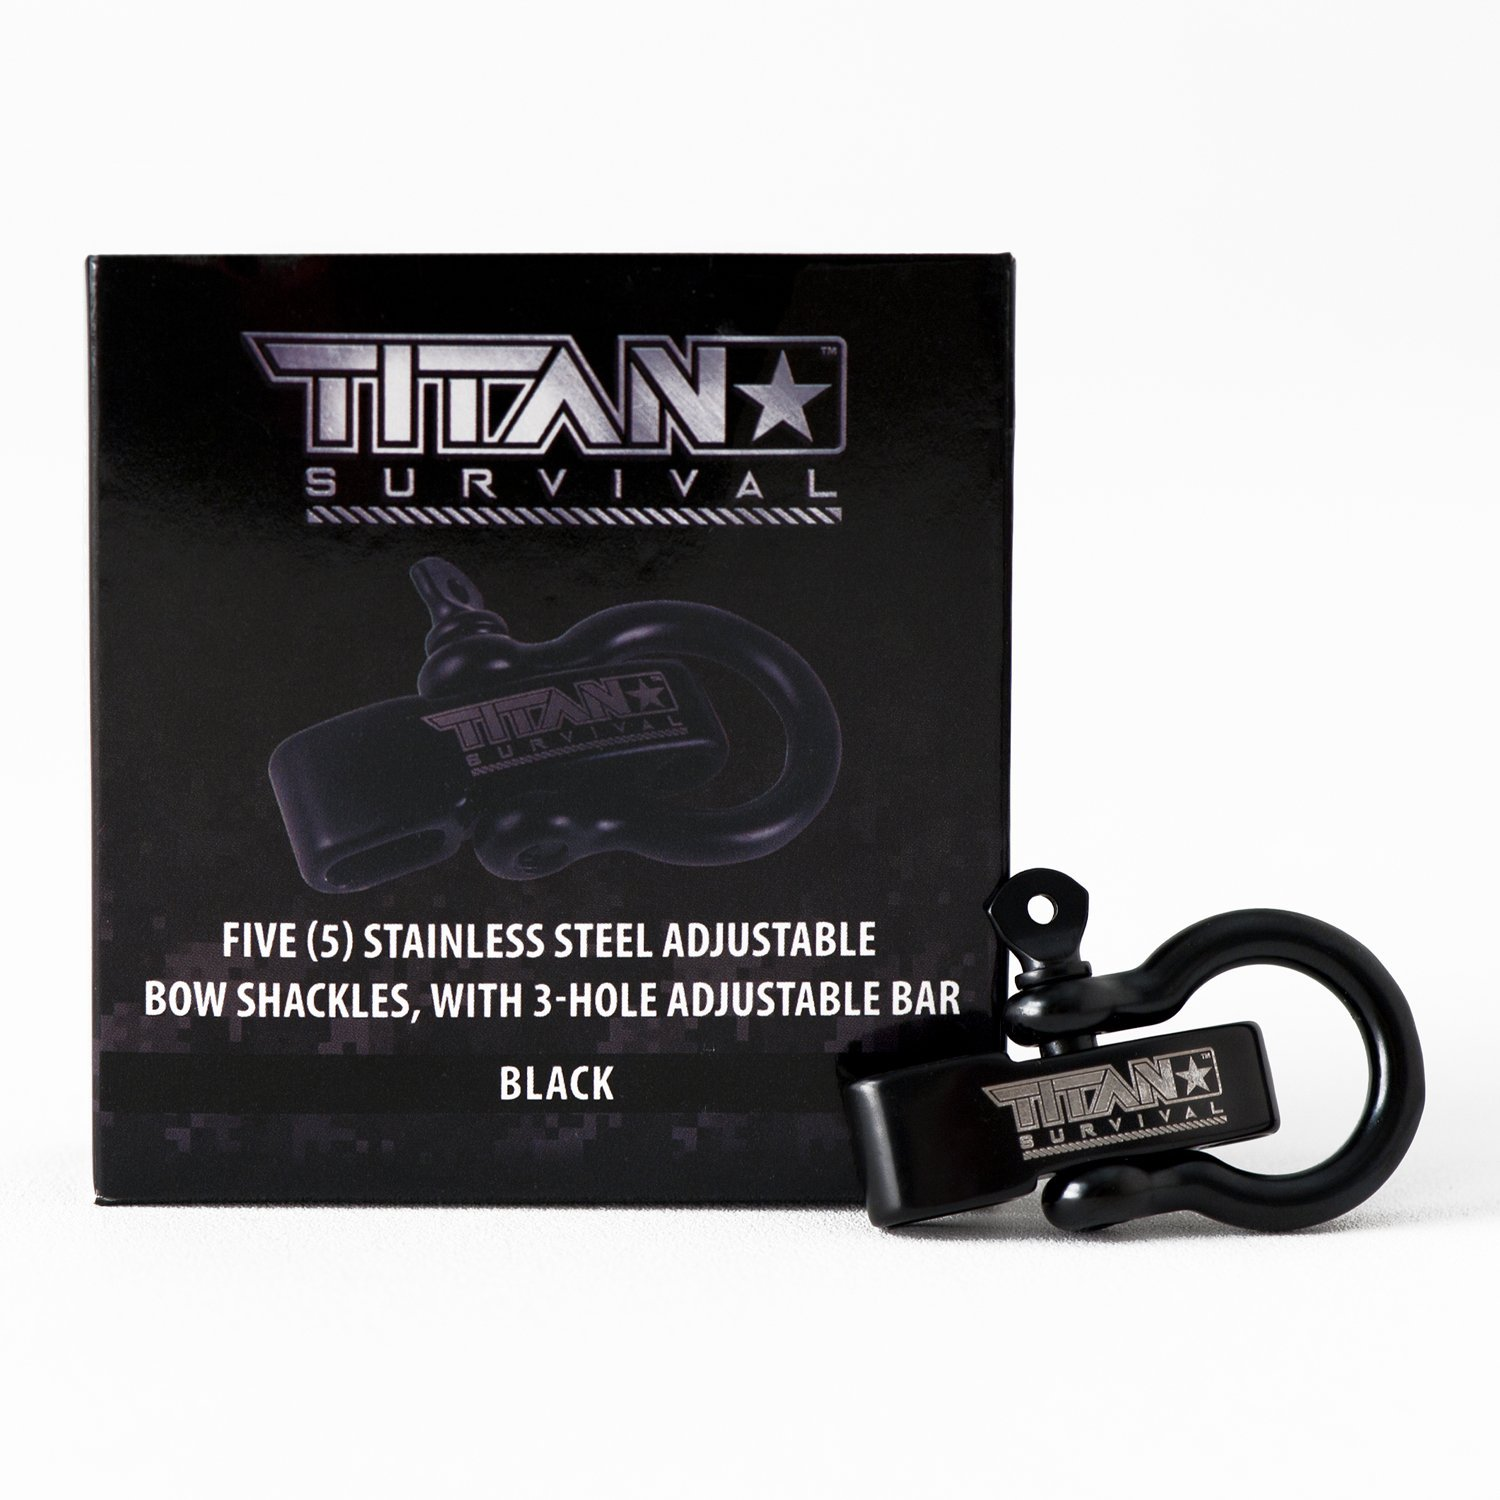 Titan Bow Shackles for Paracord Bracelets (5-Pack)   Premium Stainless Steel Metal Clasps Holds up to 1650 lbs in an Emergency. by Titan Paracord (Image #1)